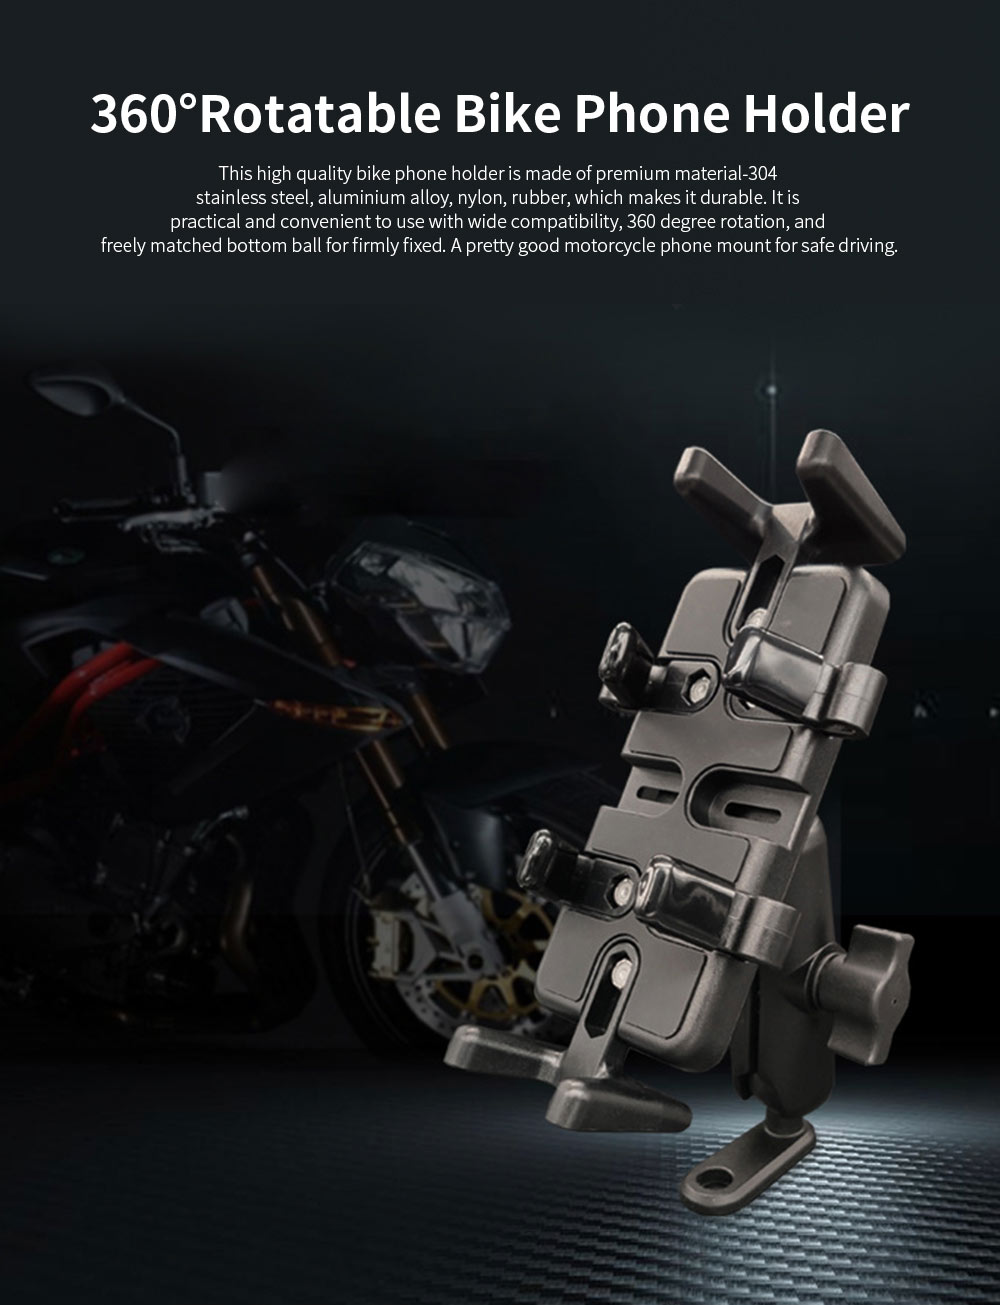 Motorcycle Phone Mount Black Handlebar Phone Holder Anti-Shake and 360°Rotatable Bike Phone Holder 0